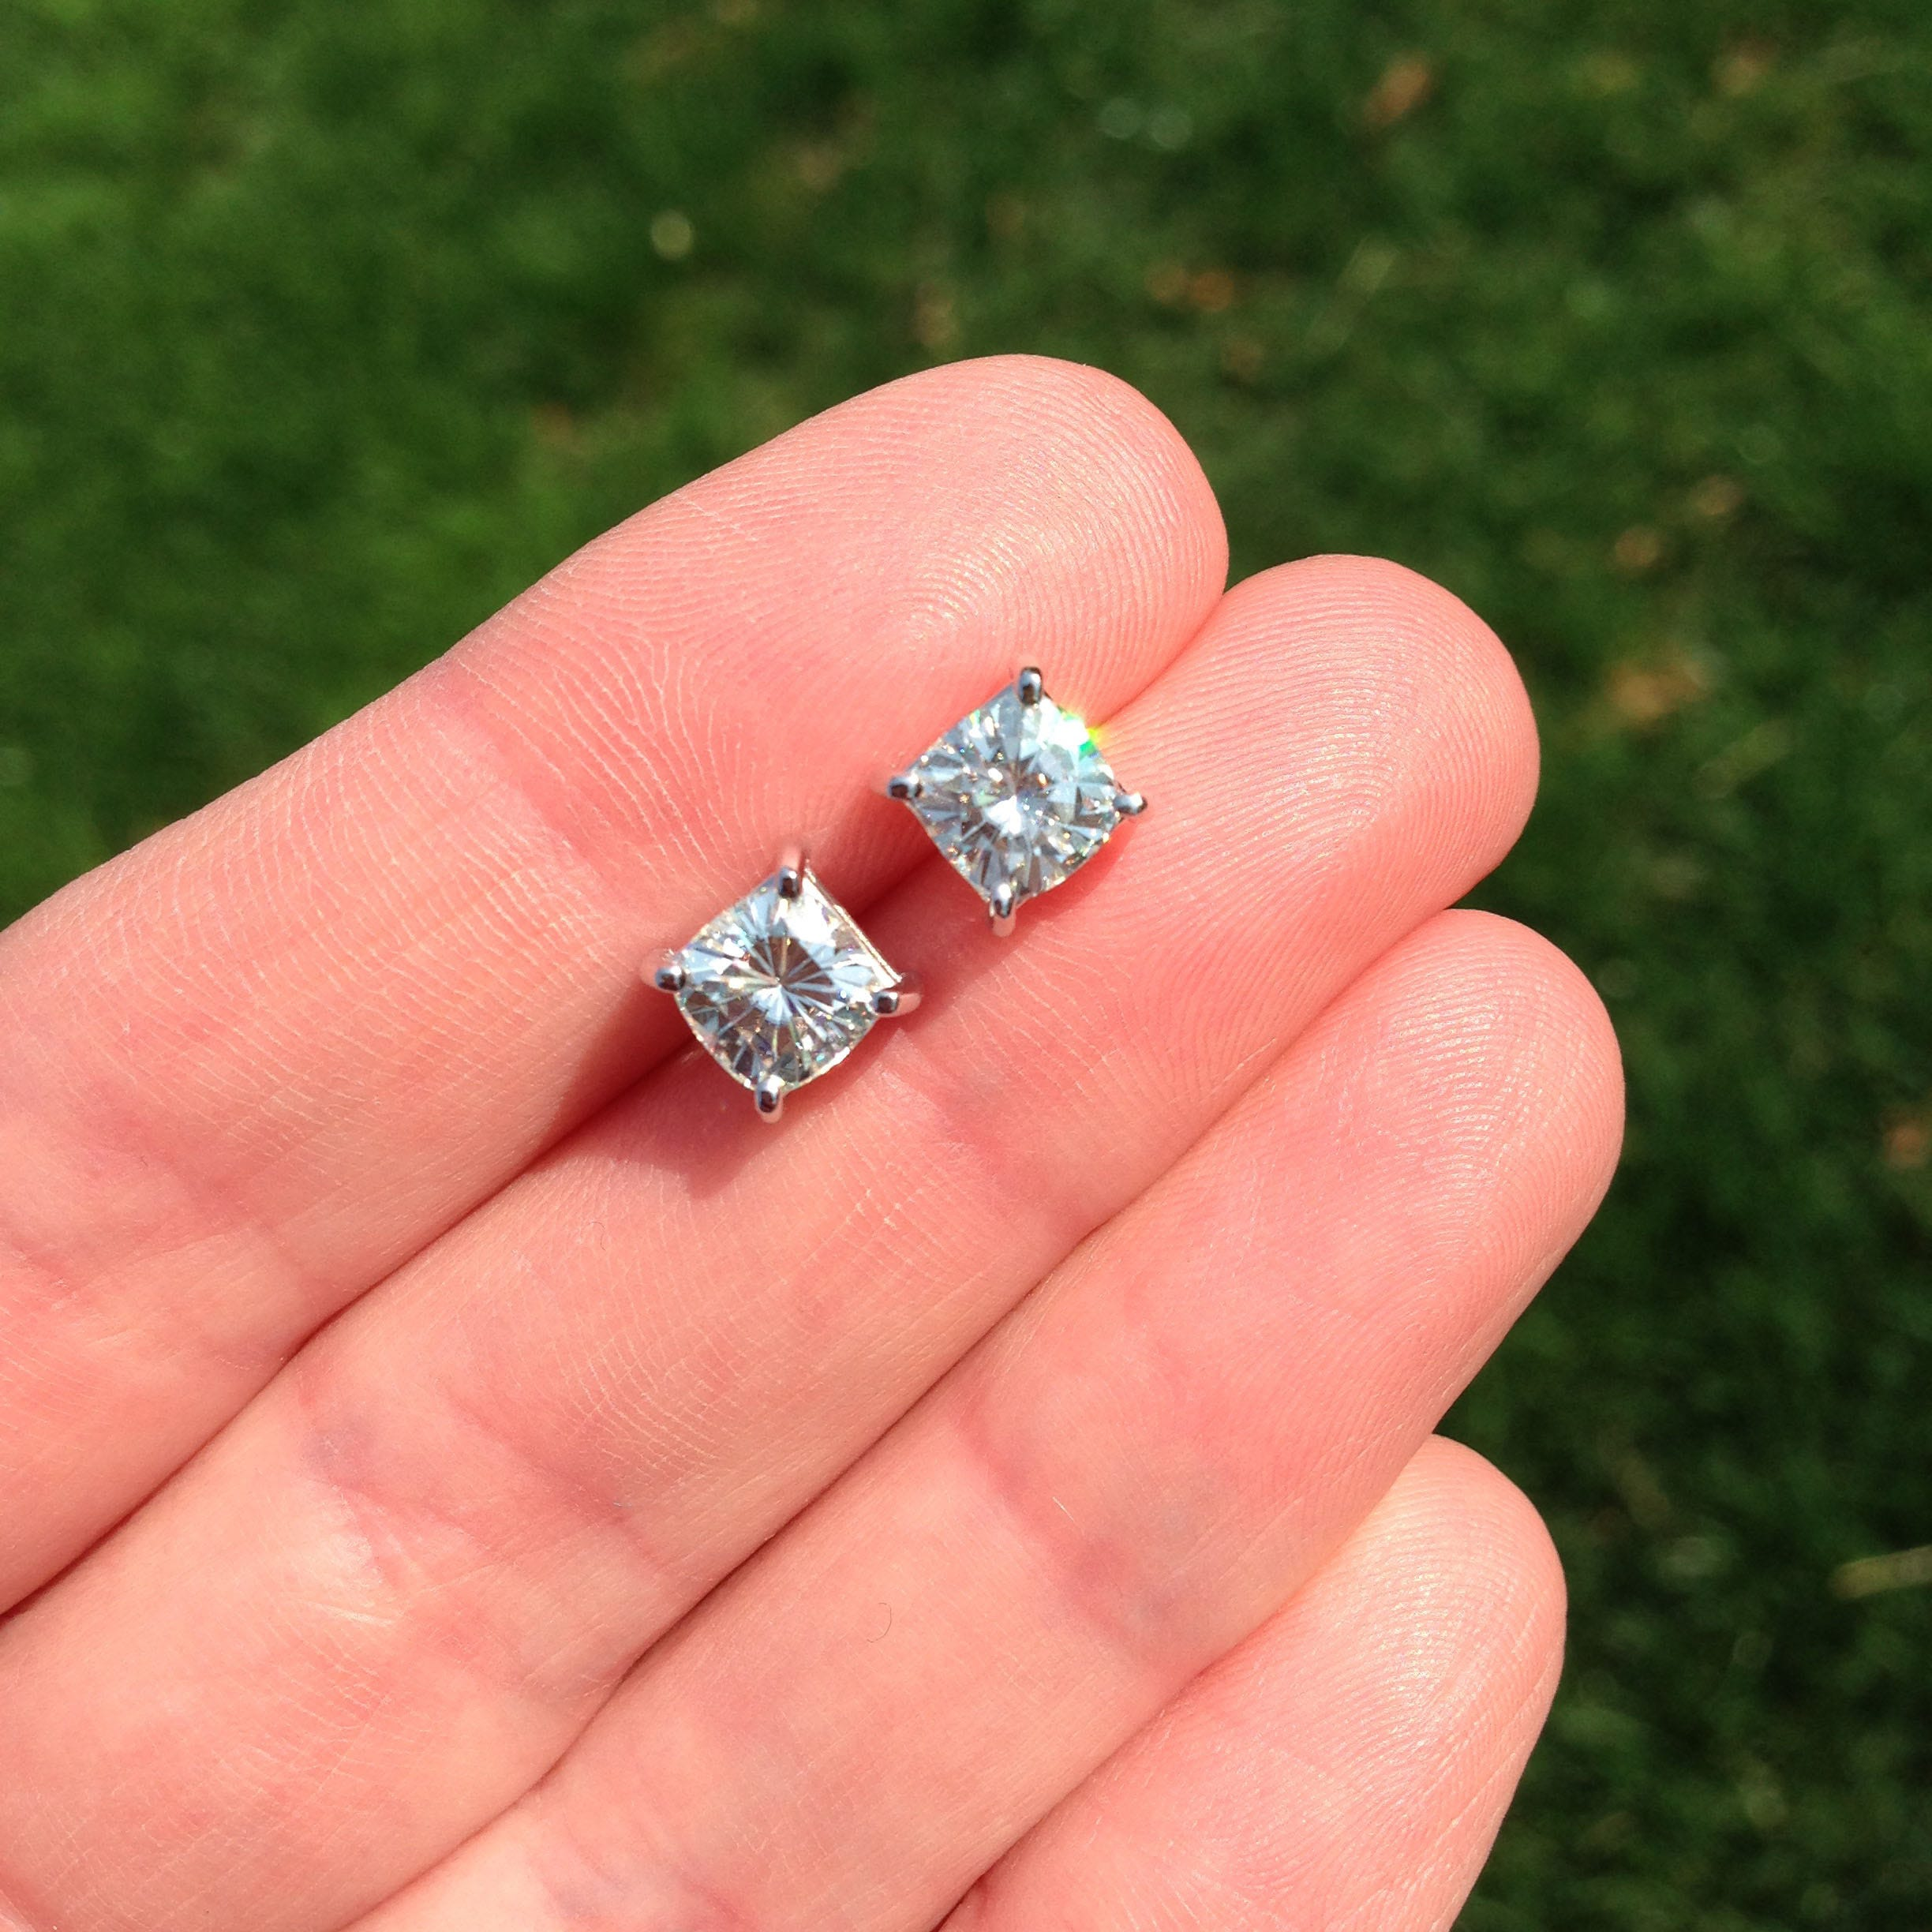 Moissanite in a Different Light